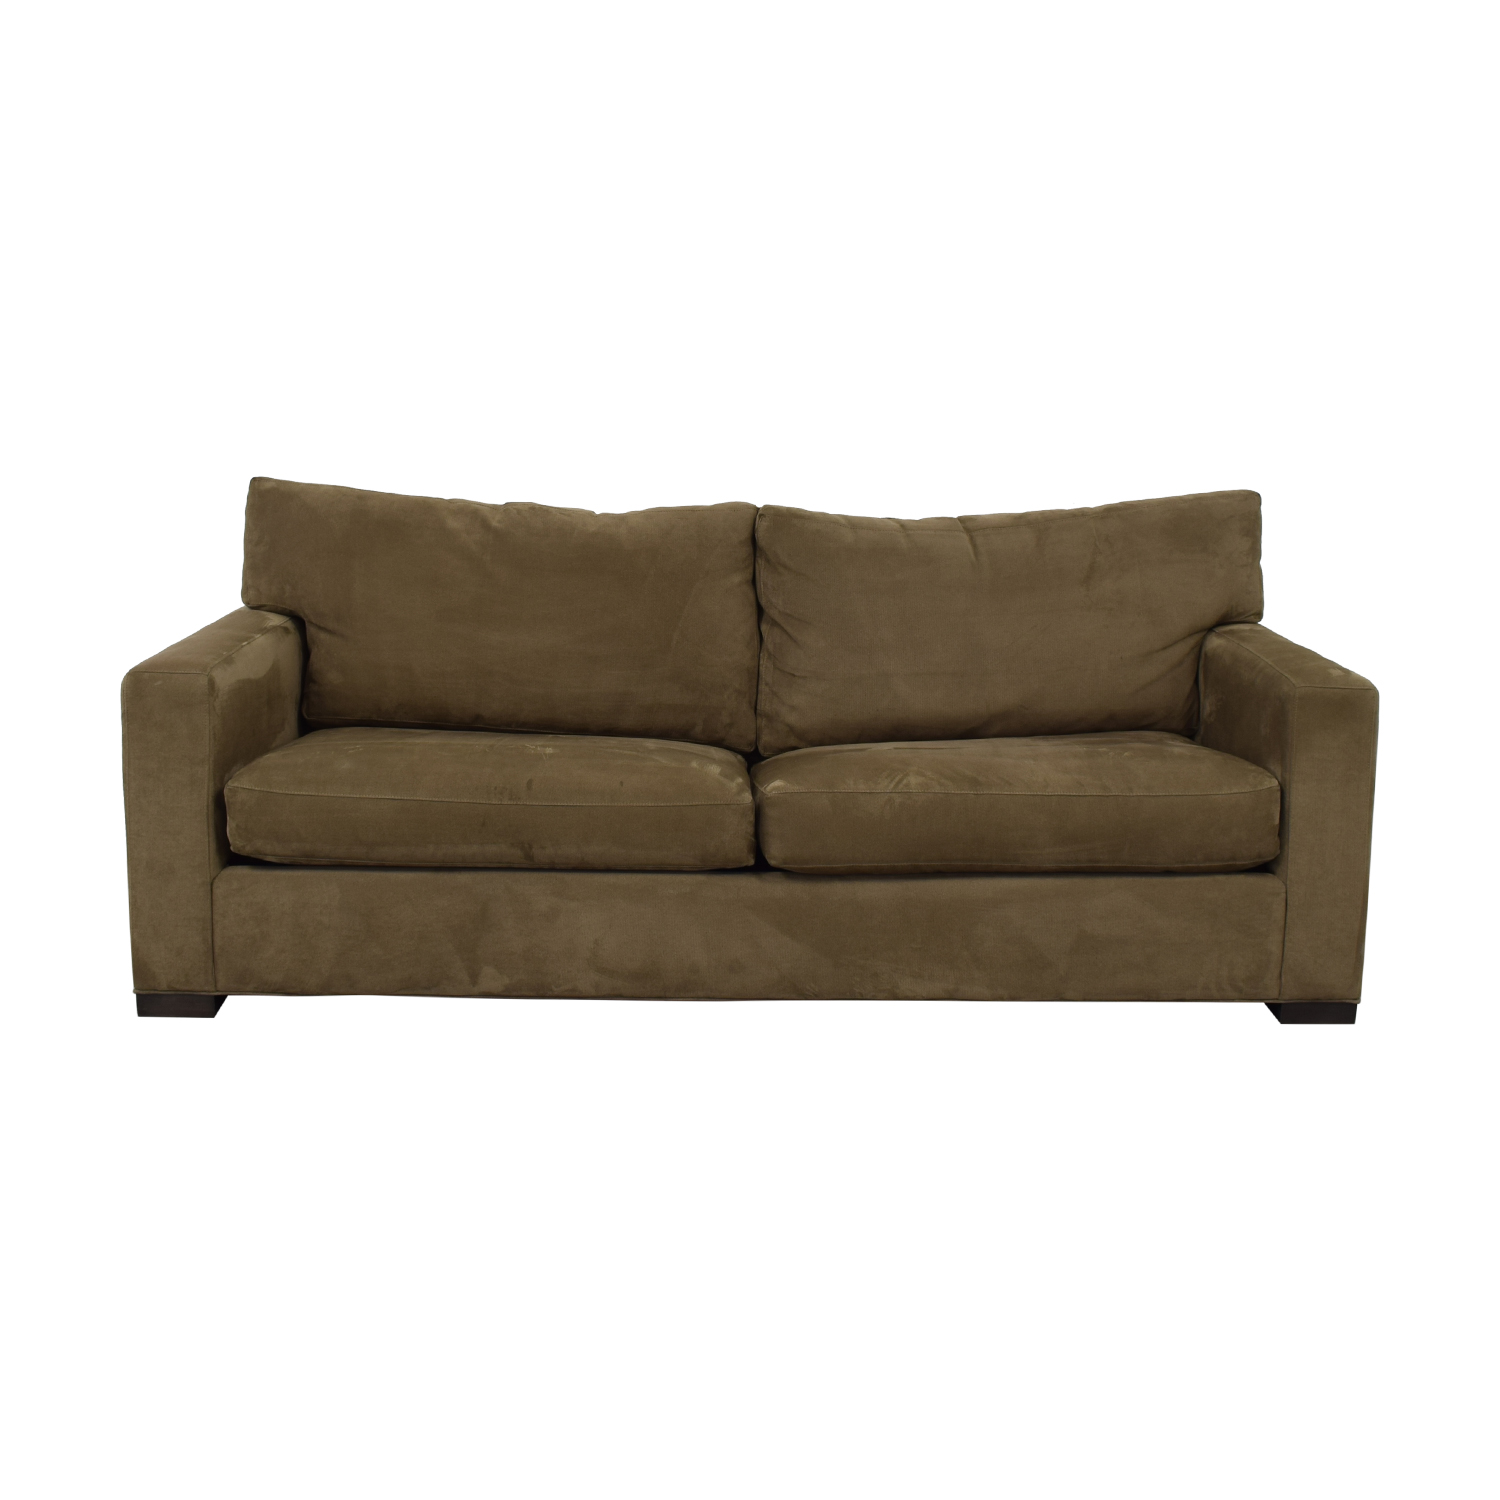 Crate & Barrel Crate & Barrel Axis II Queen Sleeper Sofa discount